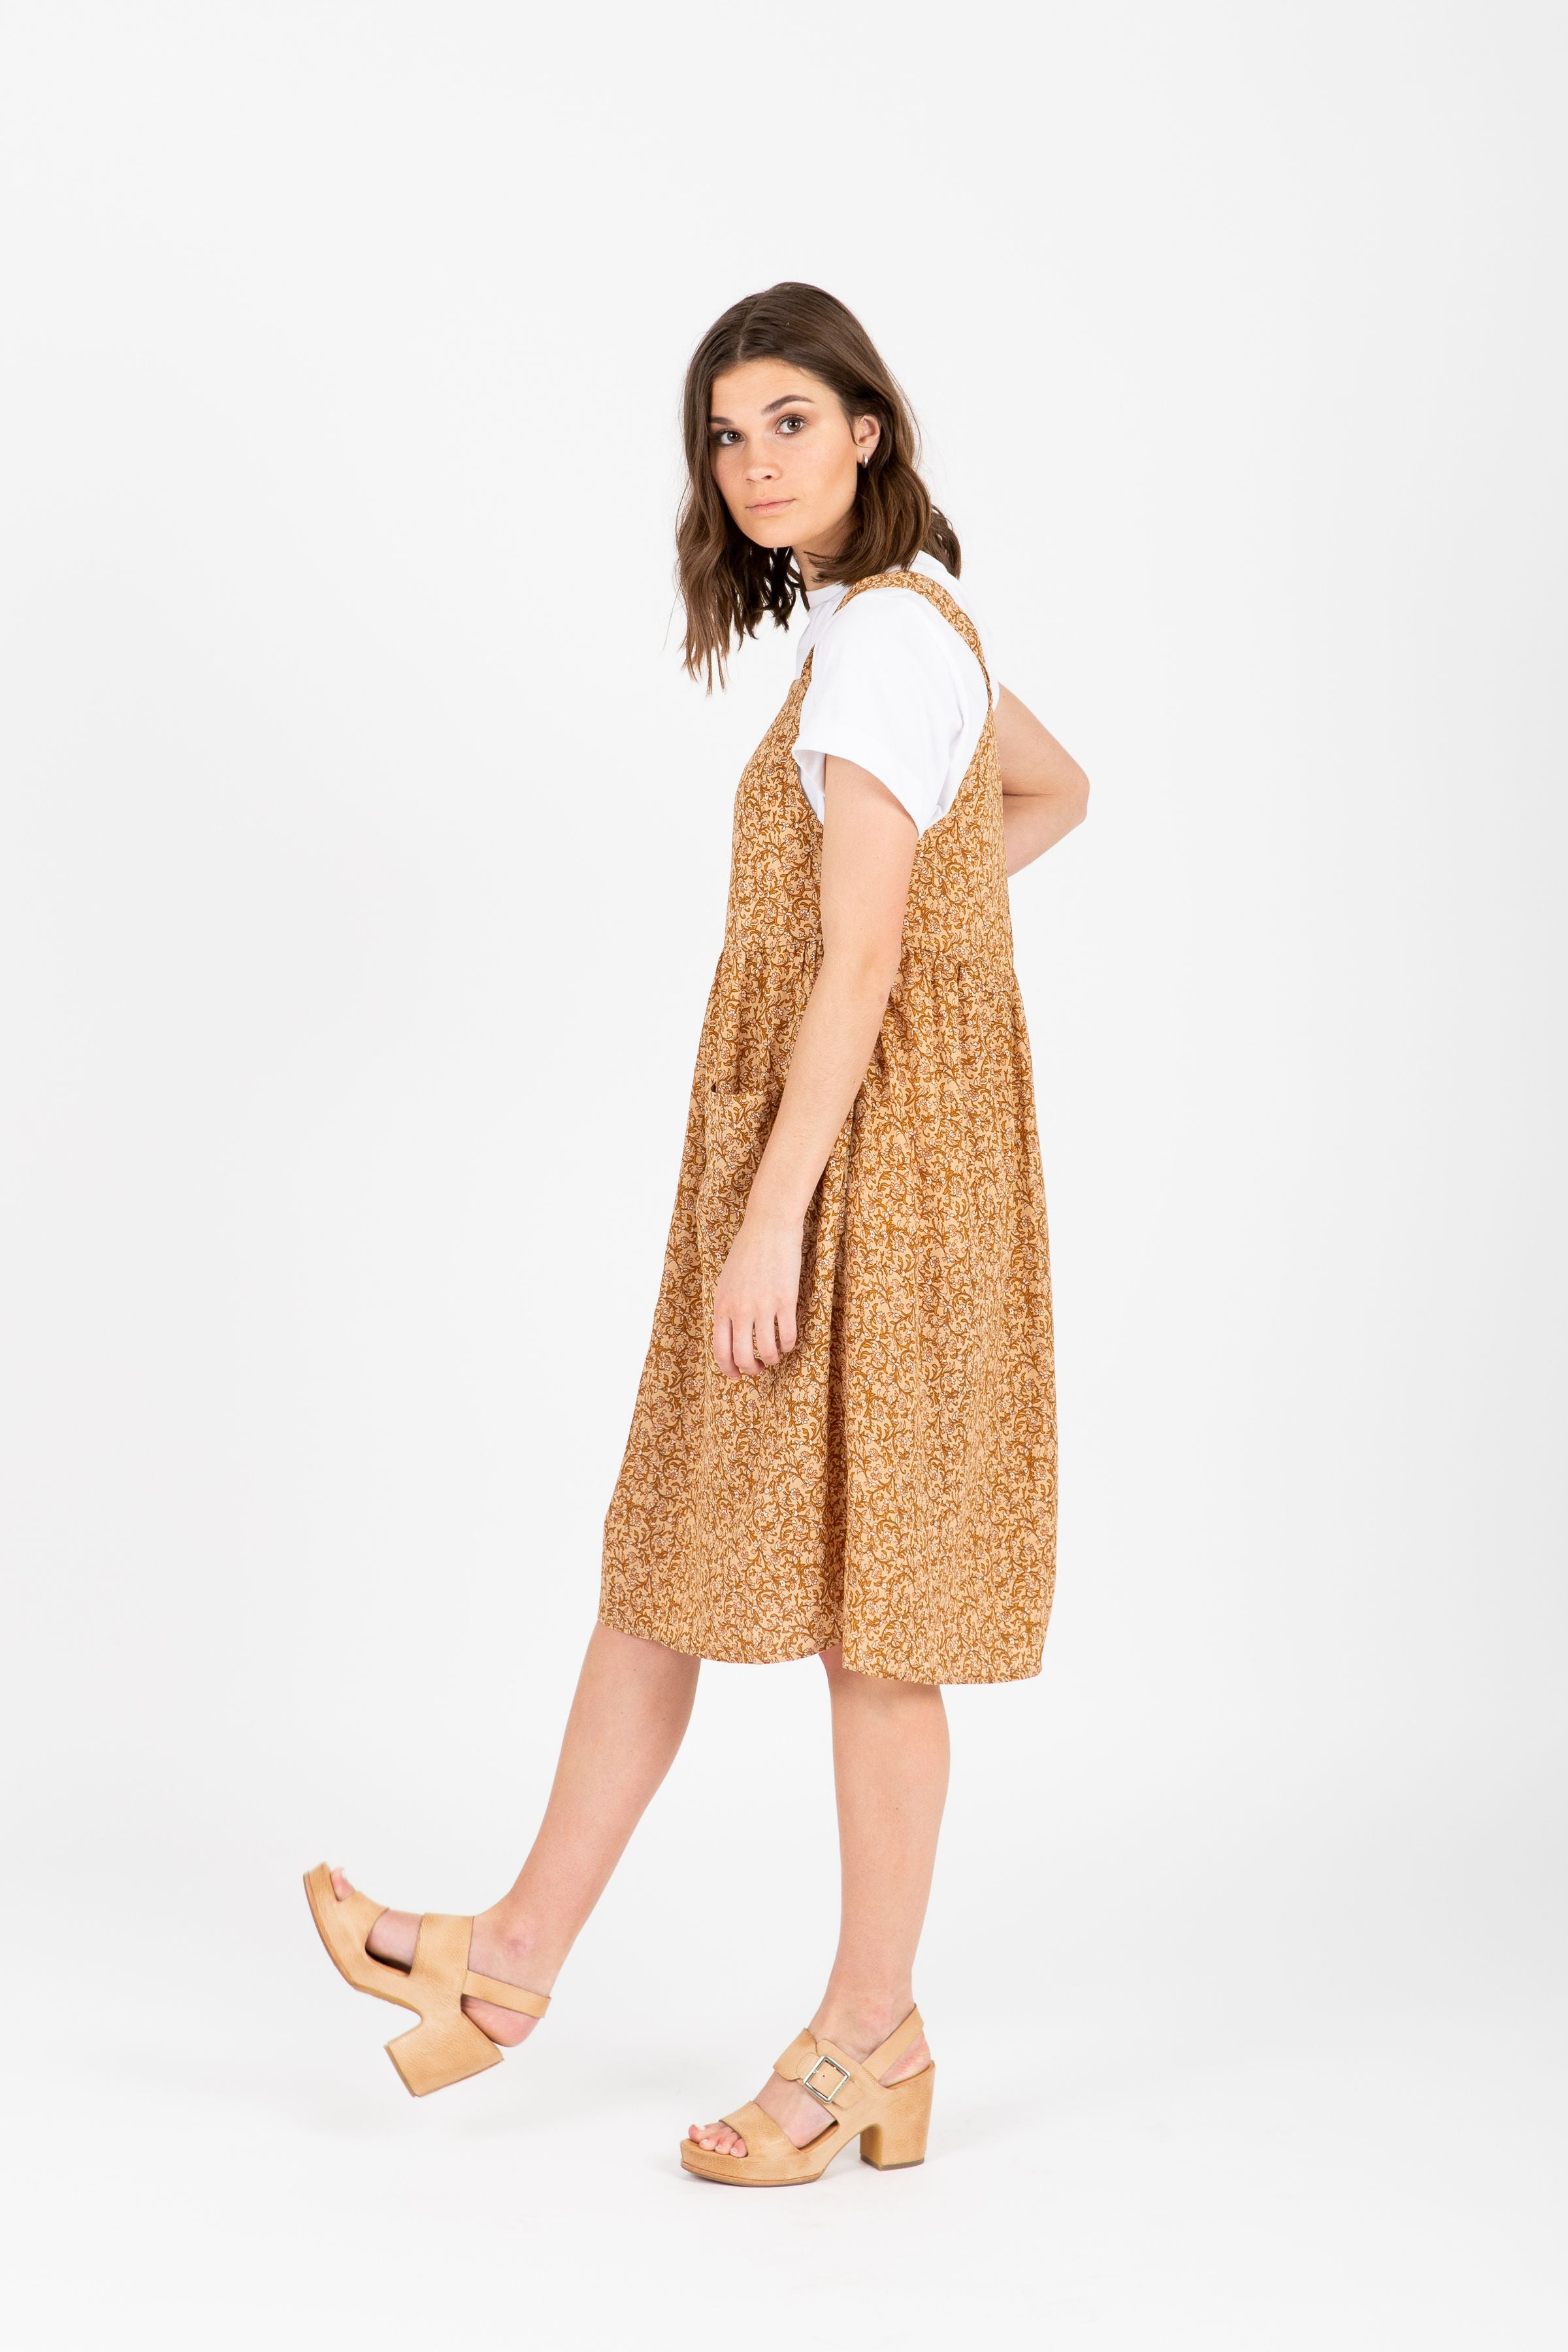 The Creme Pocket Jumper Dress in Camel